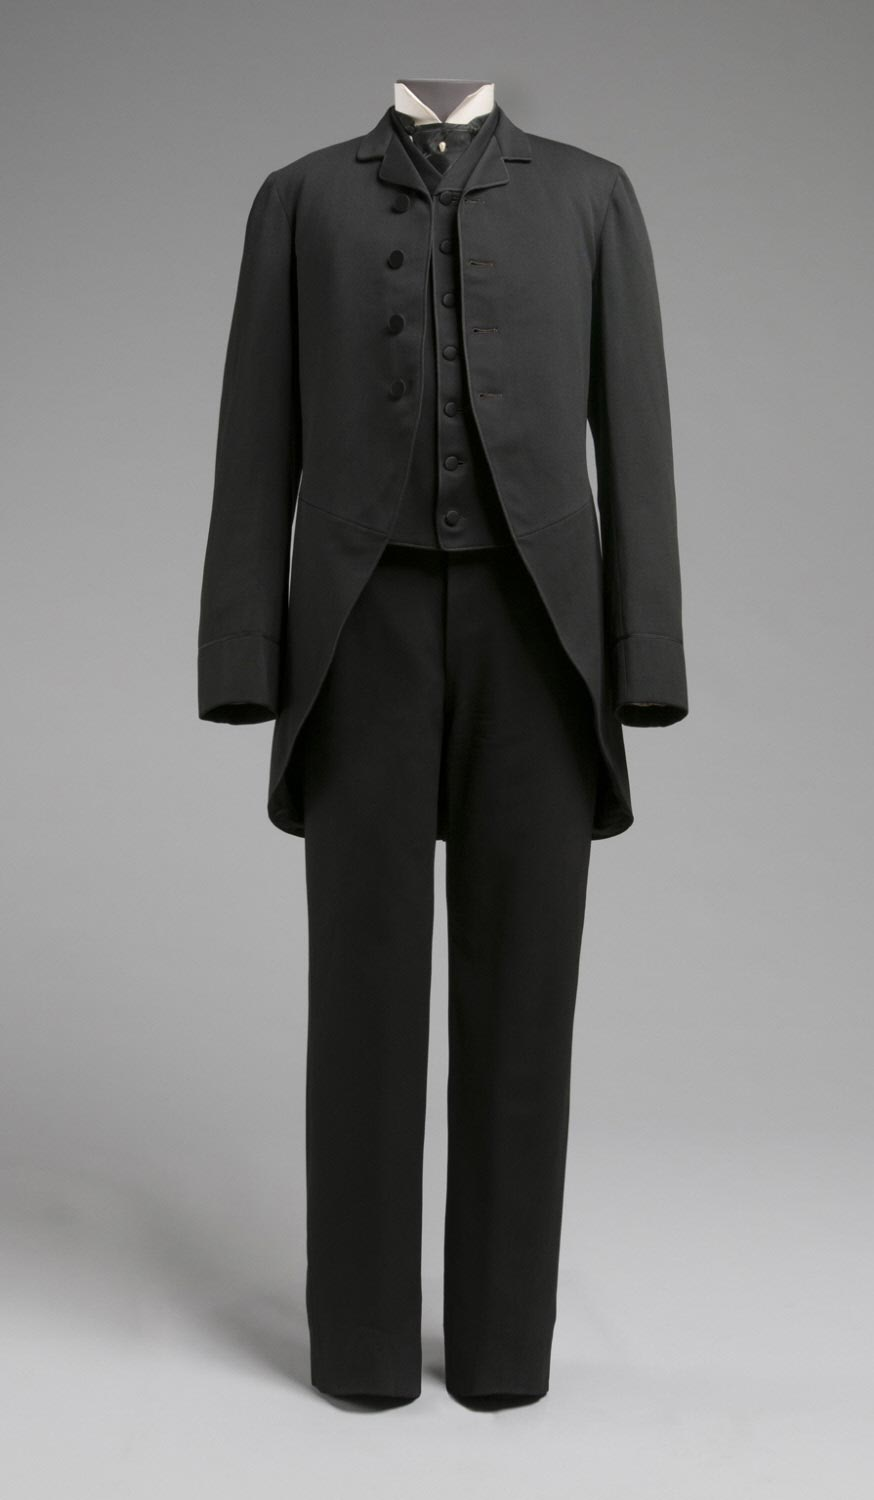 Man's Wedding Suit: Cutaway Coat, Trousers, and Waistcoat